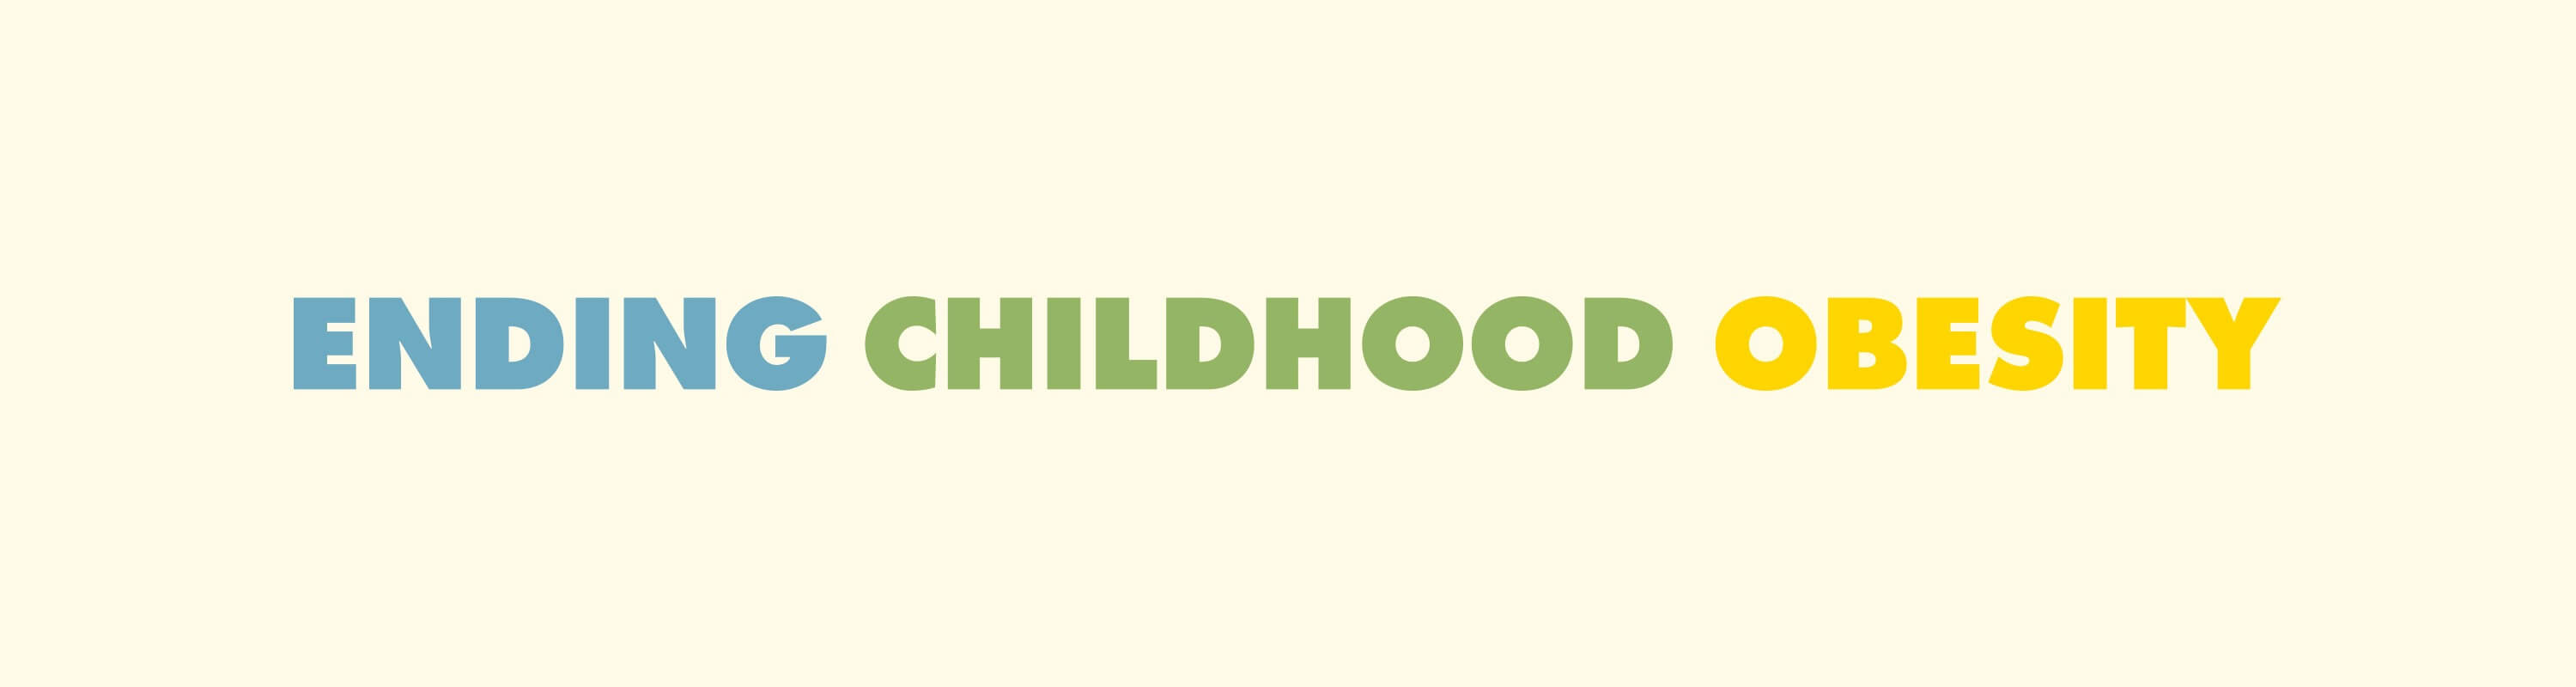 World Health Organization - Ending Childhood Obesity - Blossom